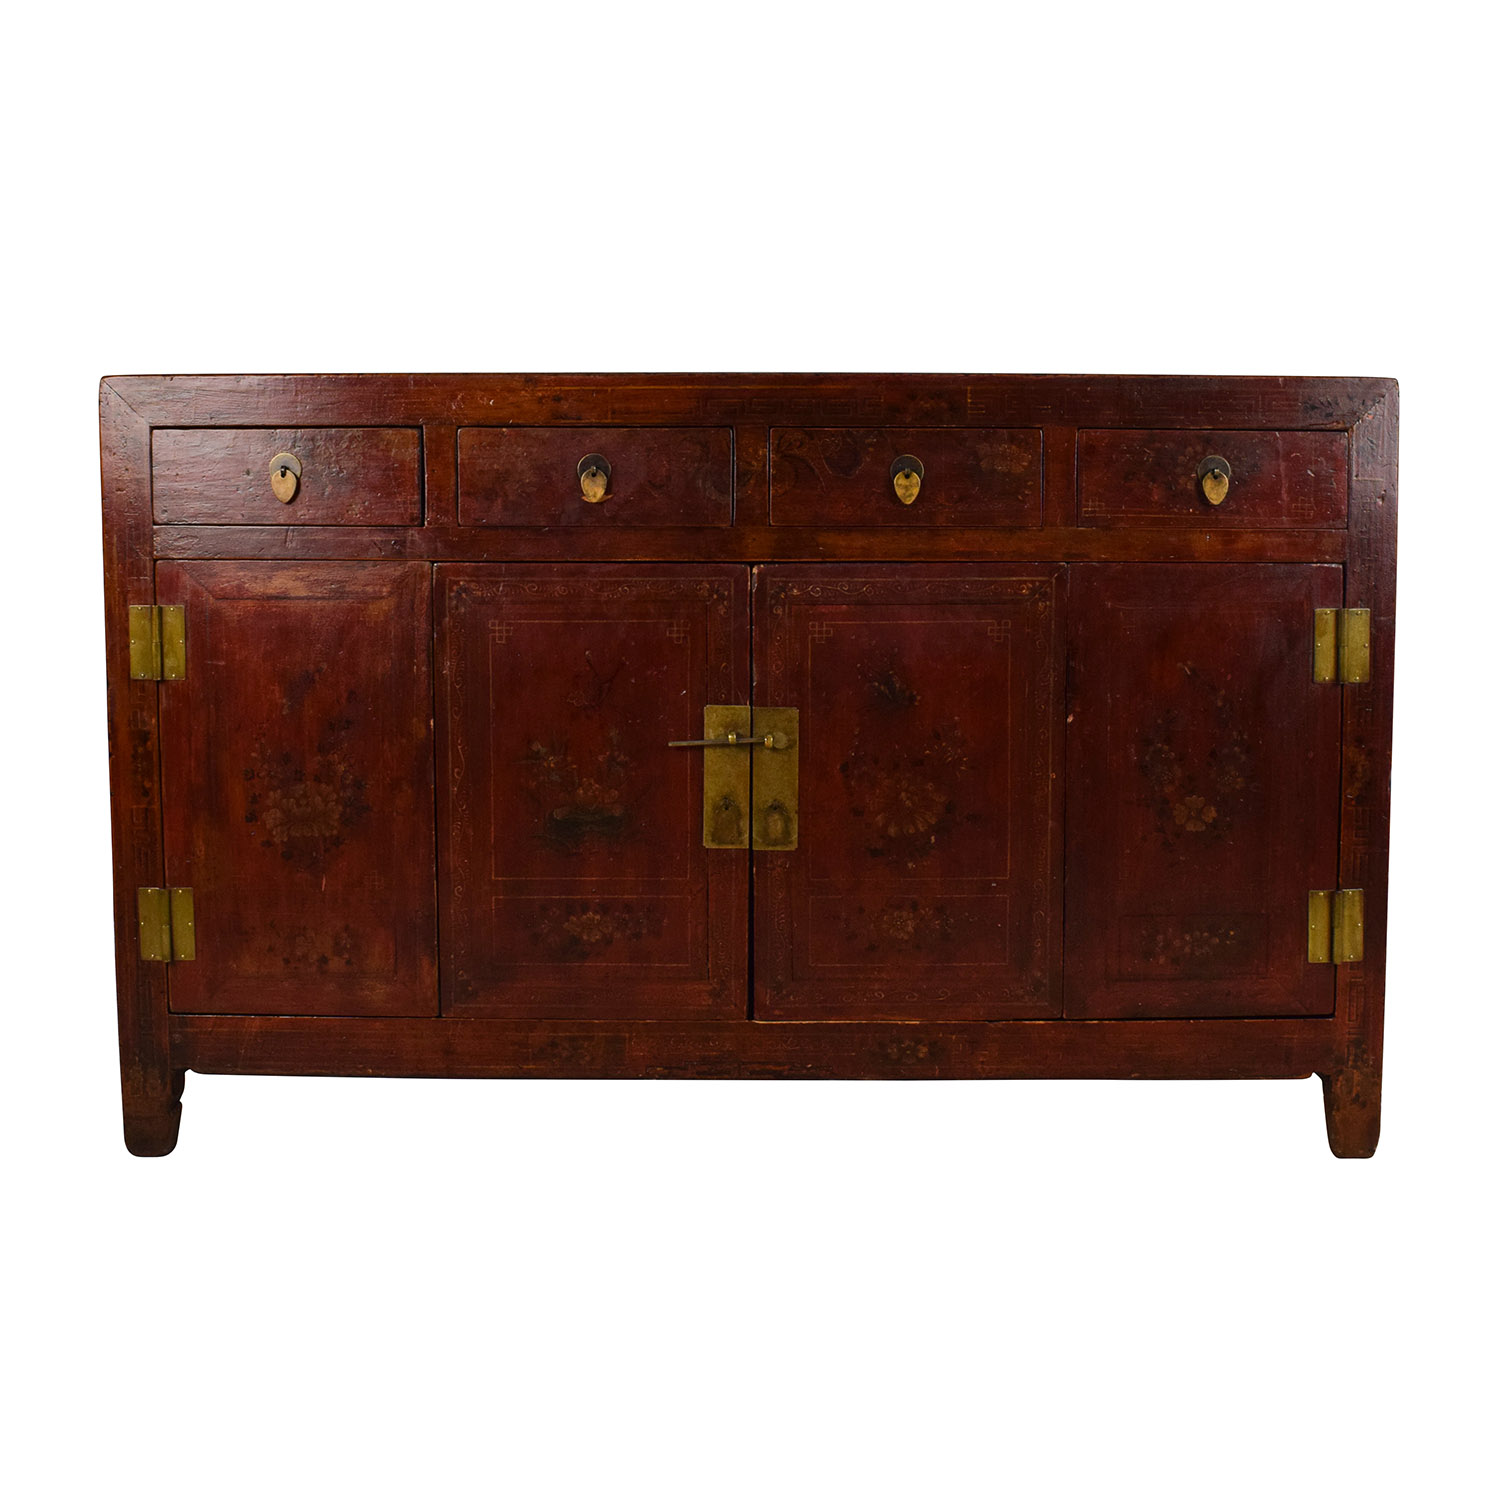 Solid Wood Tv Credenza: Solid Wood Southeast Asian Credenza / Storage